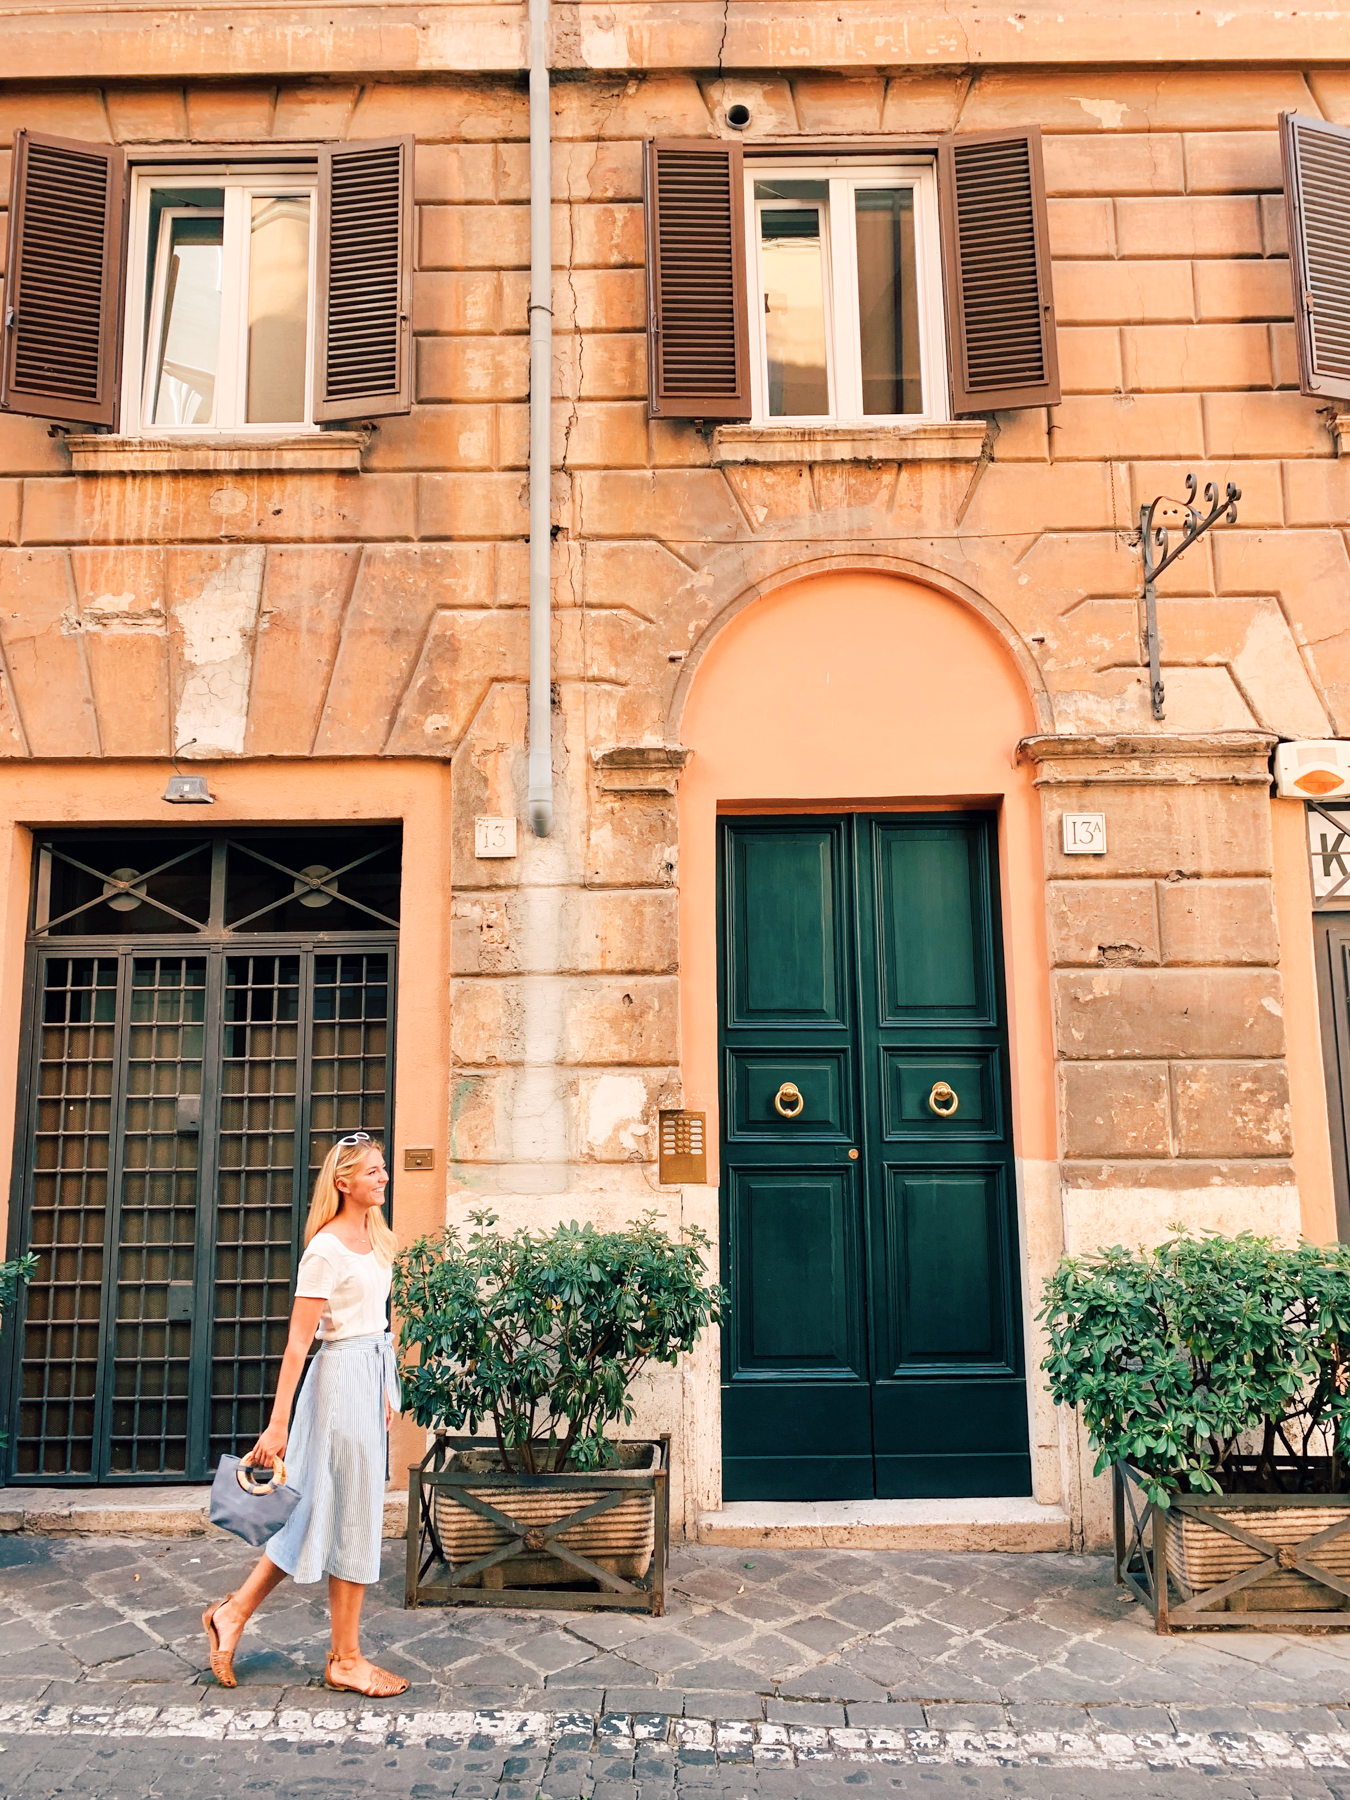 The doors in Rome enchanted me.